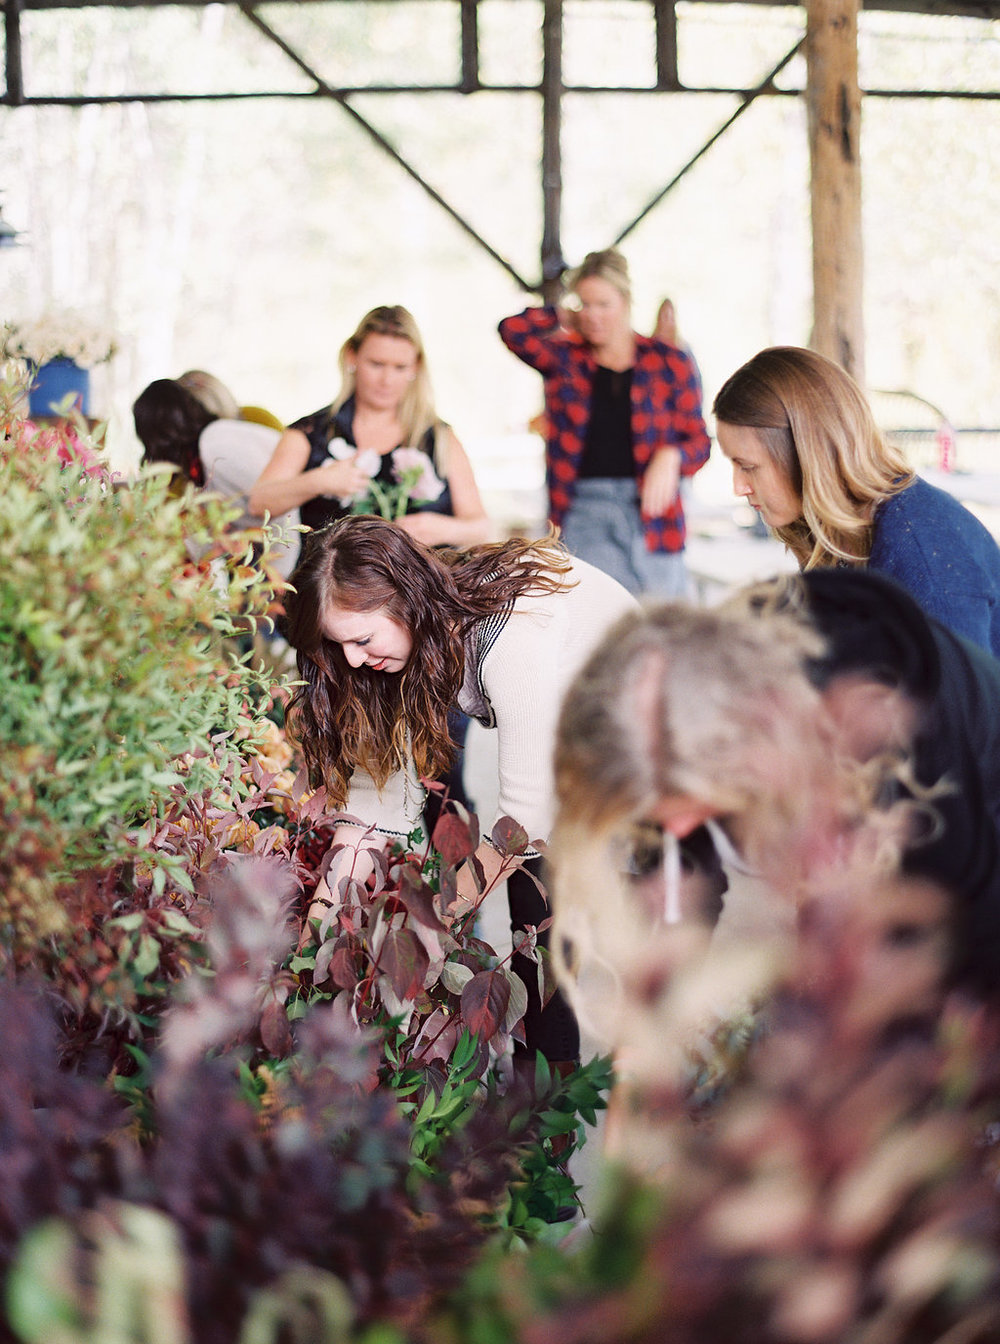 Selecting flower at the Wild West Flower Workshop